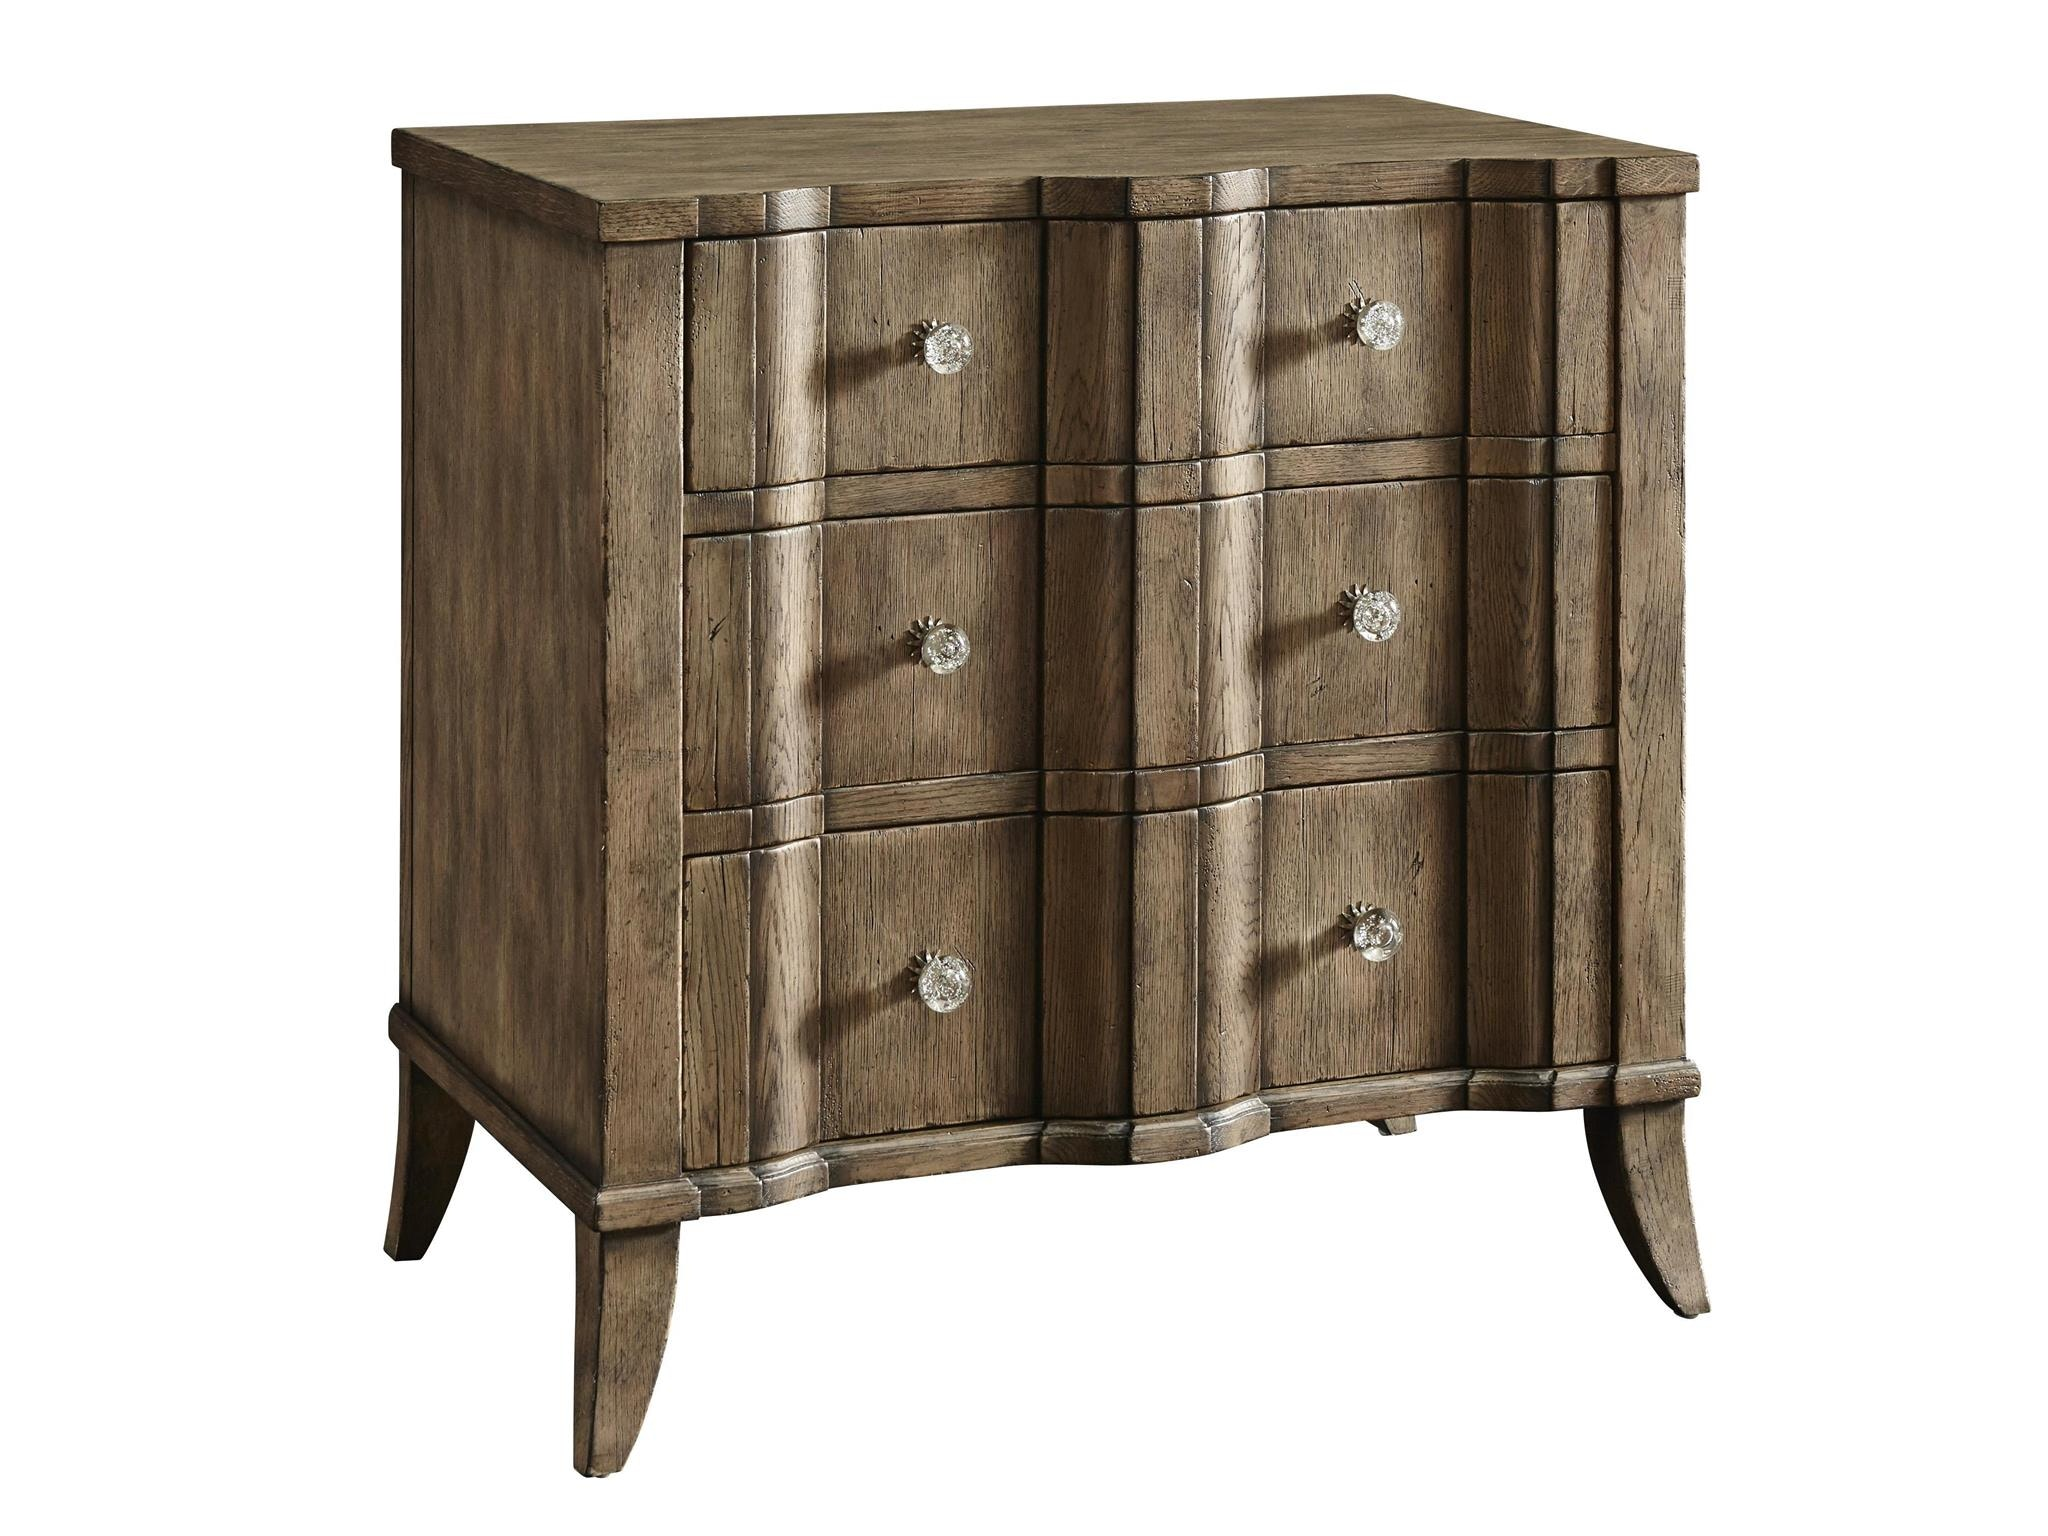 Fine Furniture Design Bedroom Theo Nightstand 1580 106   Bartlett Home  Furnishings   Memphis, TN